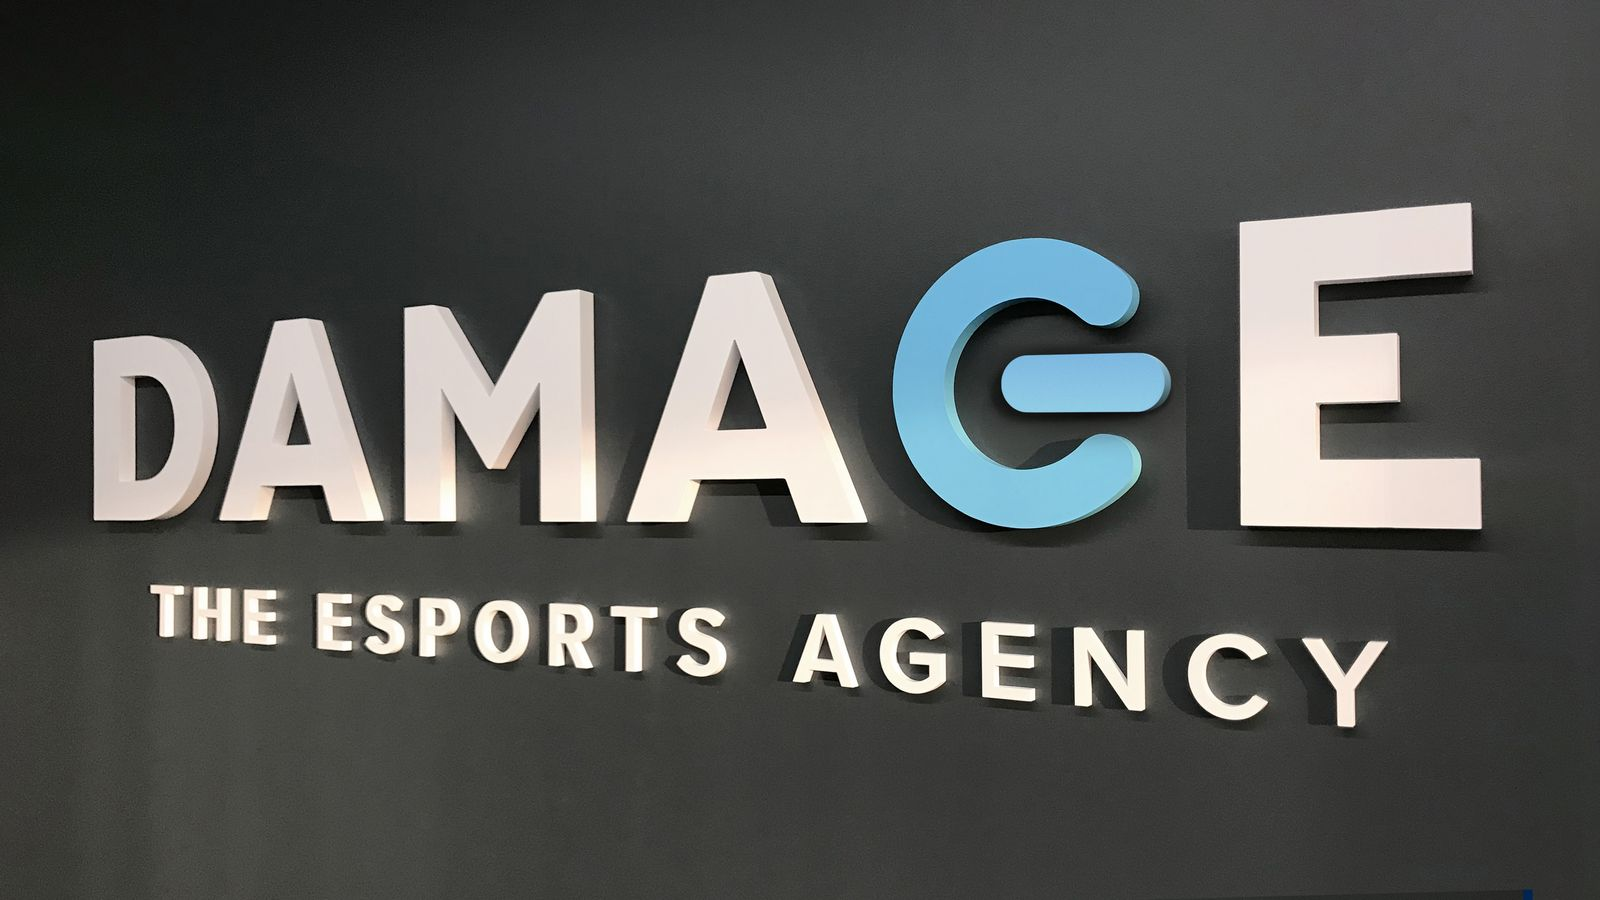 Damage - The Esports Agency 3d office sign letters displaying the company name made of acrylic for interior branding